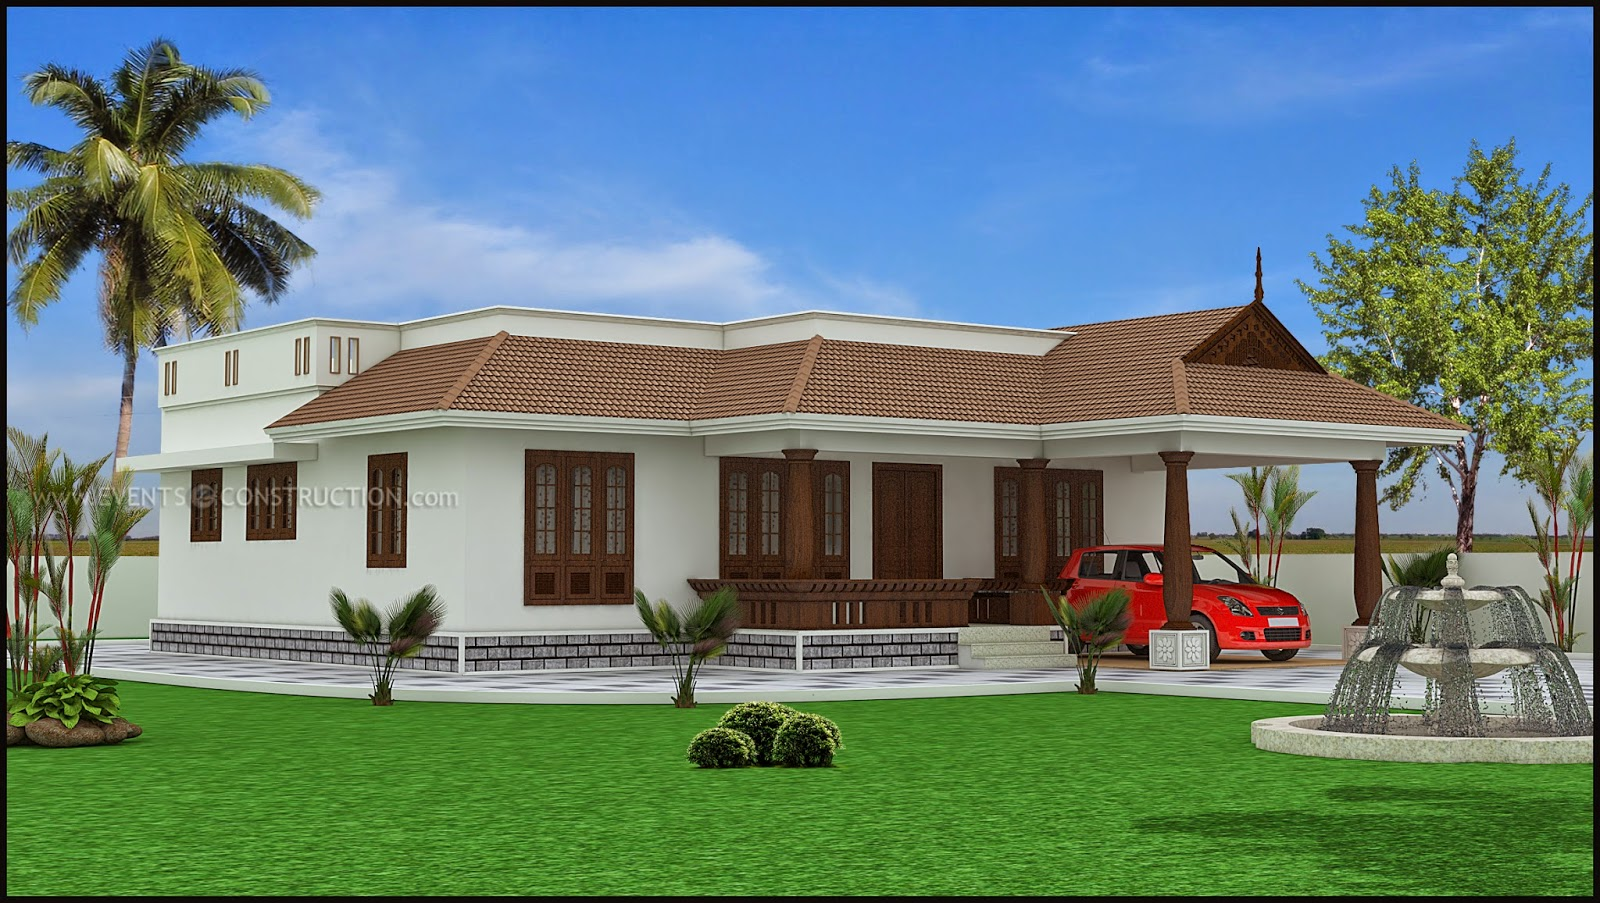 Evens construction pvt ltd single storey kerala house design for Single storey house plans